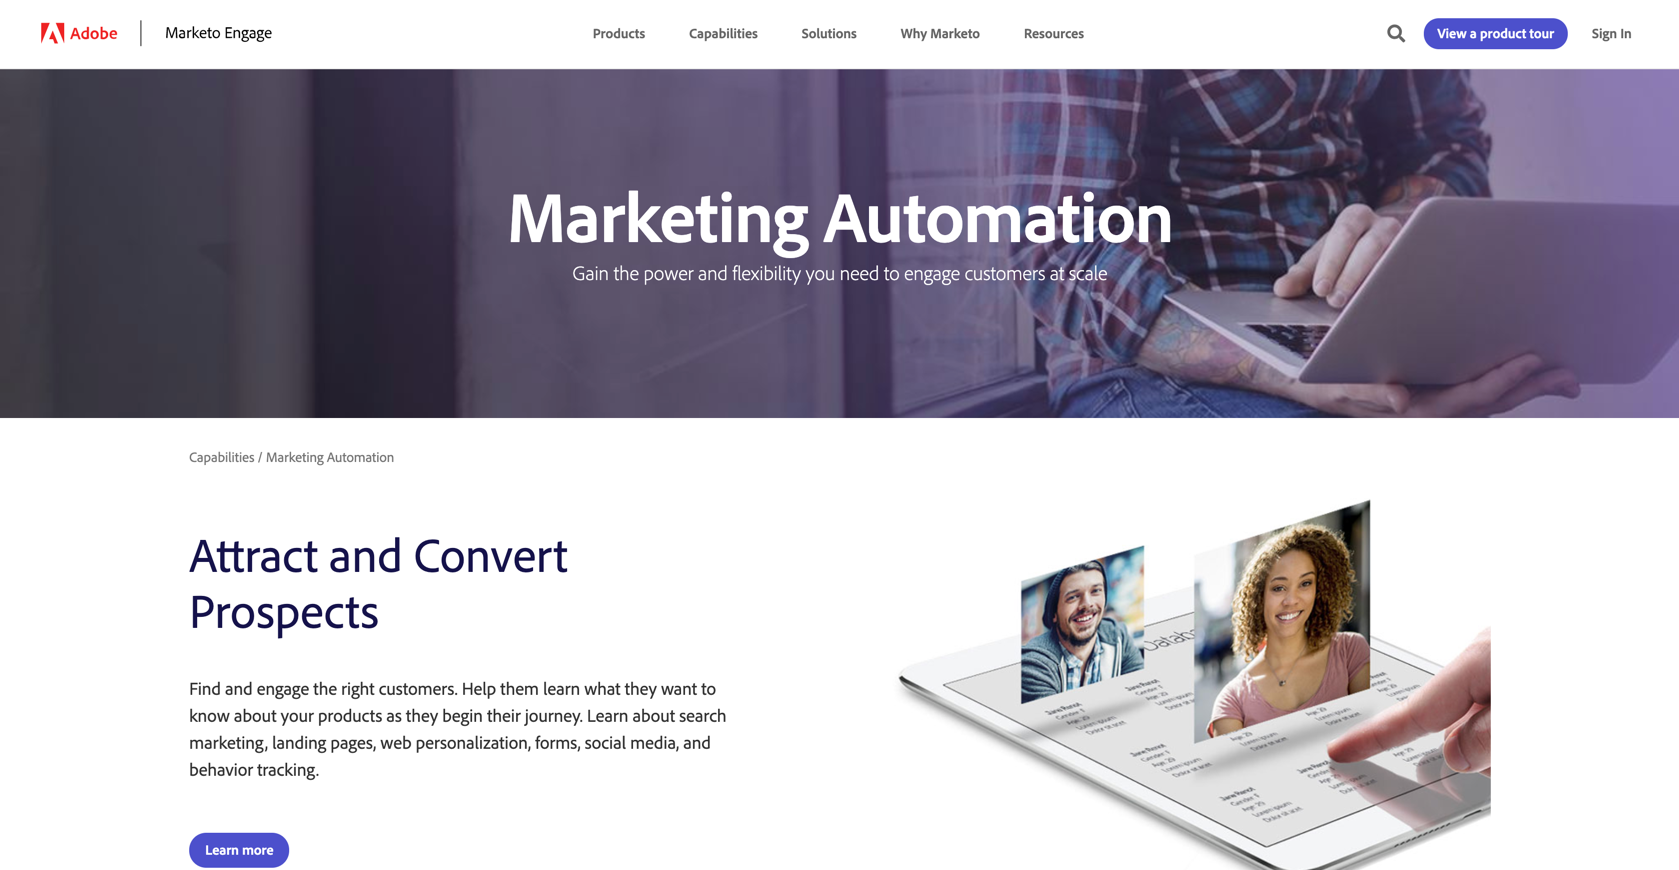 5-best-marketing-automation-platforms-for-your-business-4 5 Best Marketing Automation Platforms for Your Business